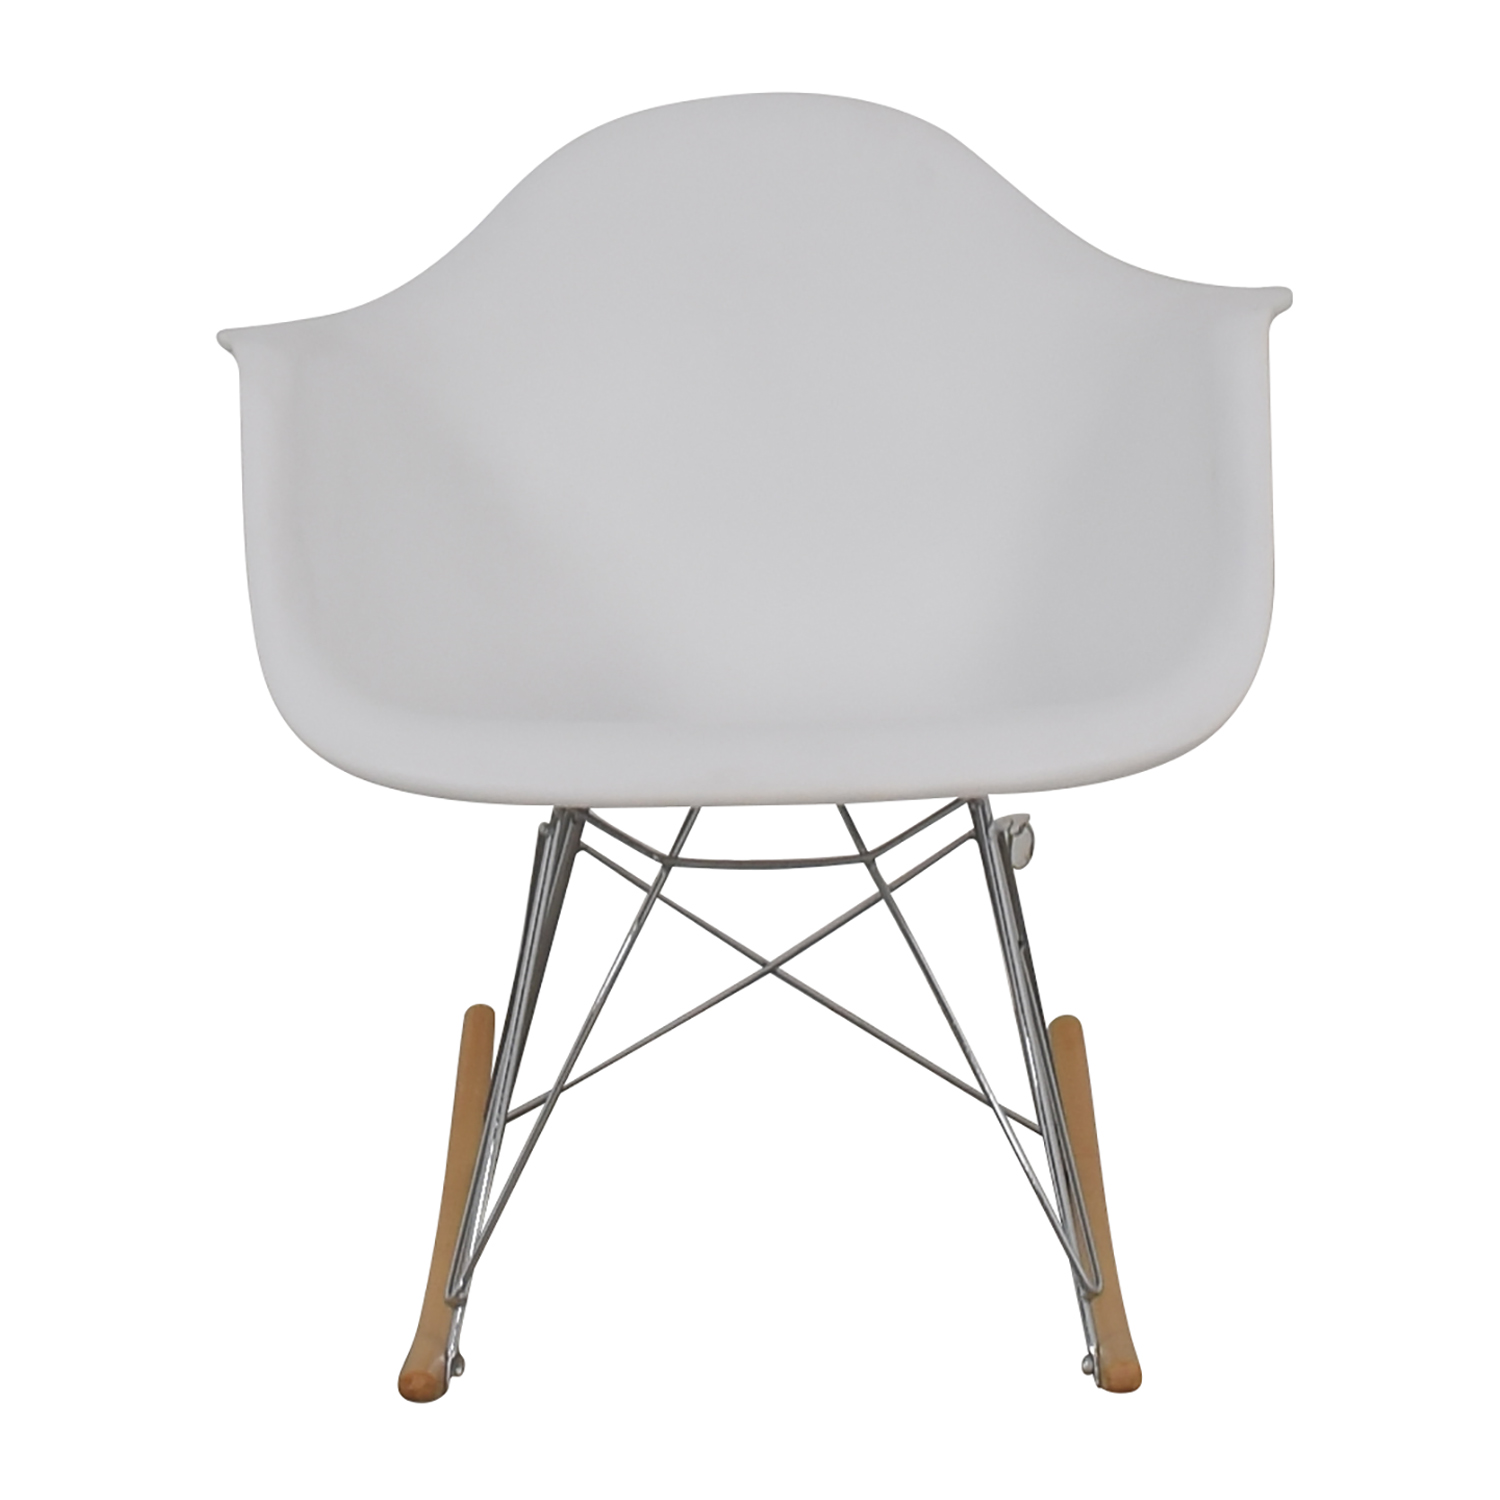 Pleasing 47 Off Molded Plastic White Rocking Chair Chairs Unemploymentrelief Wooden Chair Designs For Living Room Unemploymentrelieforg